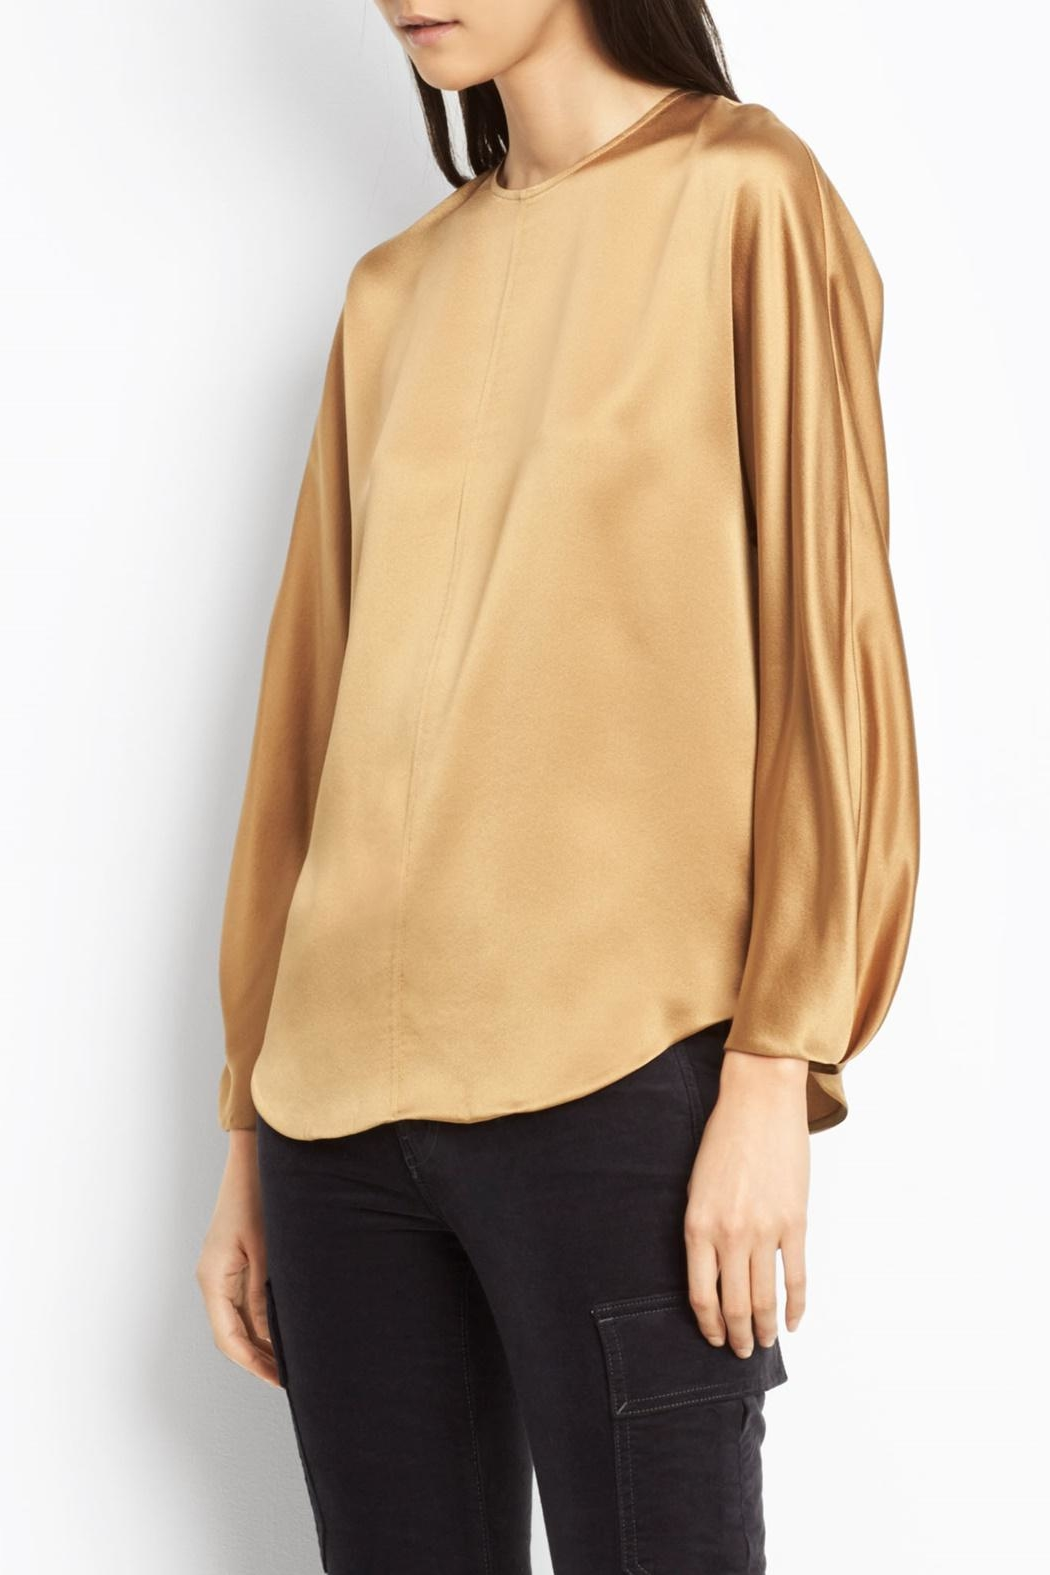 Vince Slit Back Blouse - Main Image